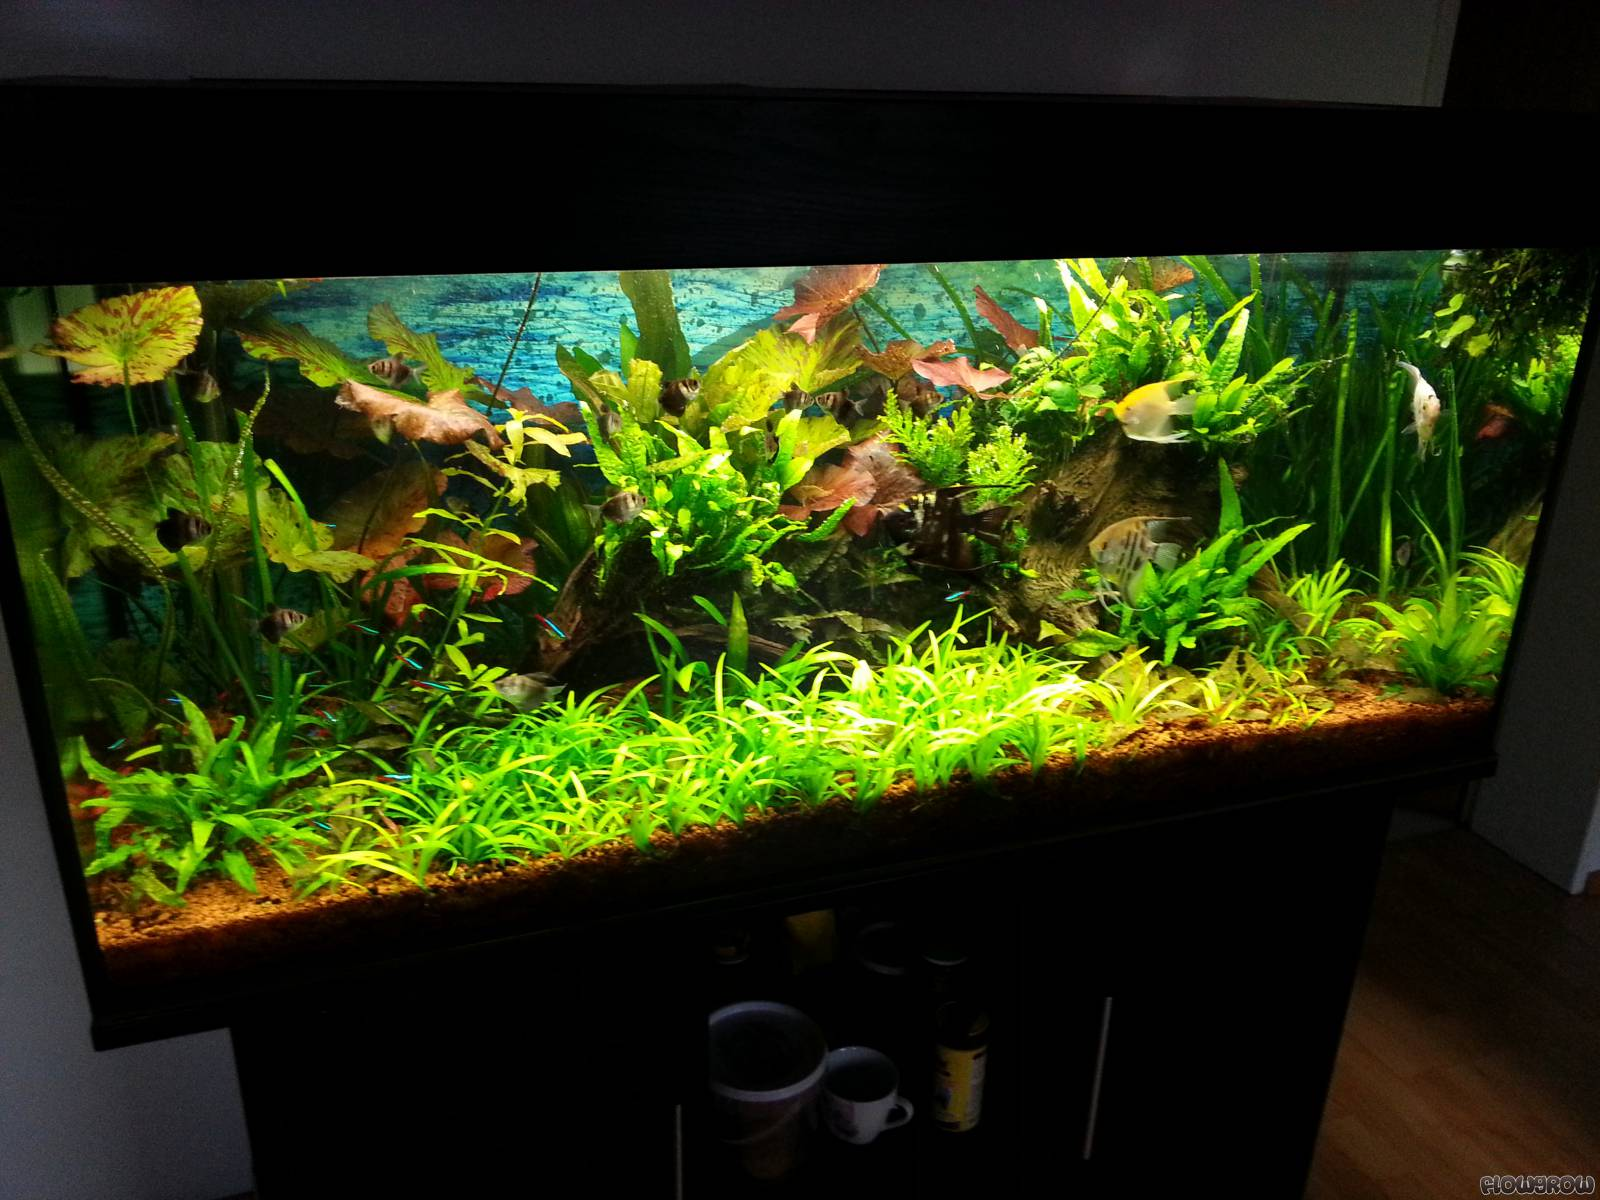 300l aquarium flowgrow aquascape aquarien datenbank. Black Bedroom Furniture Sets. Home Design Ideas